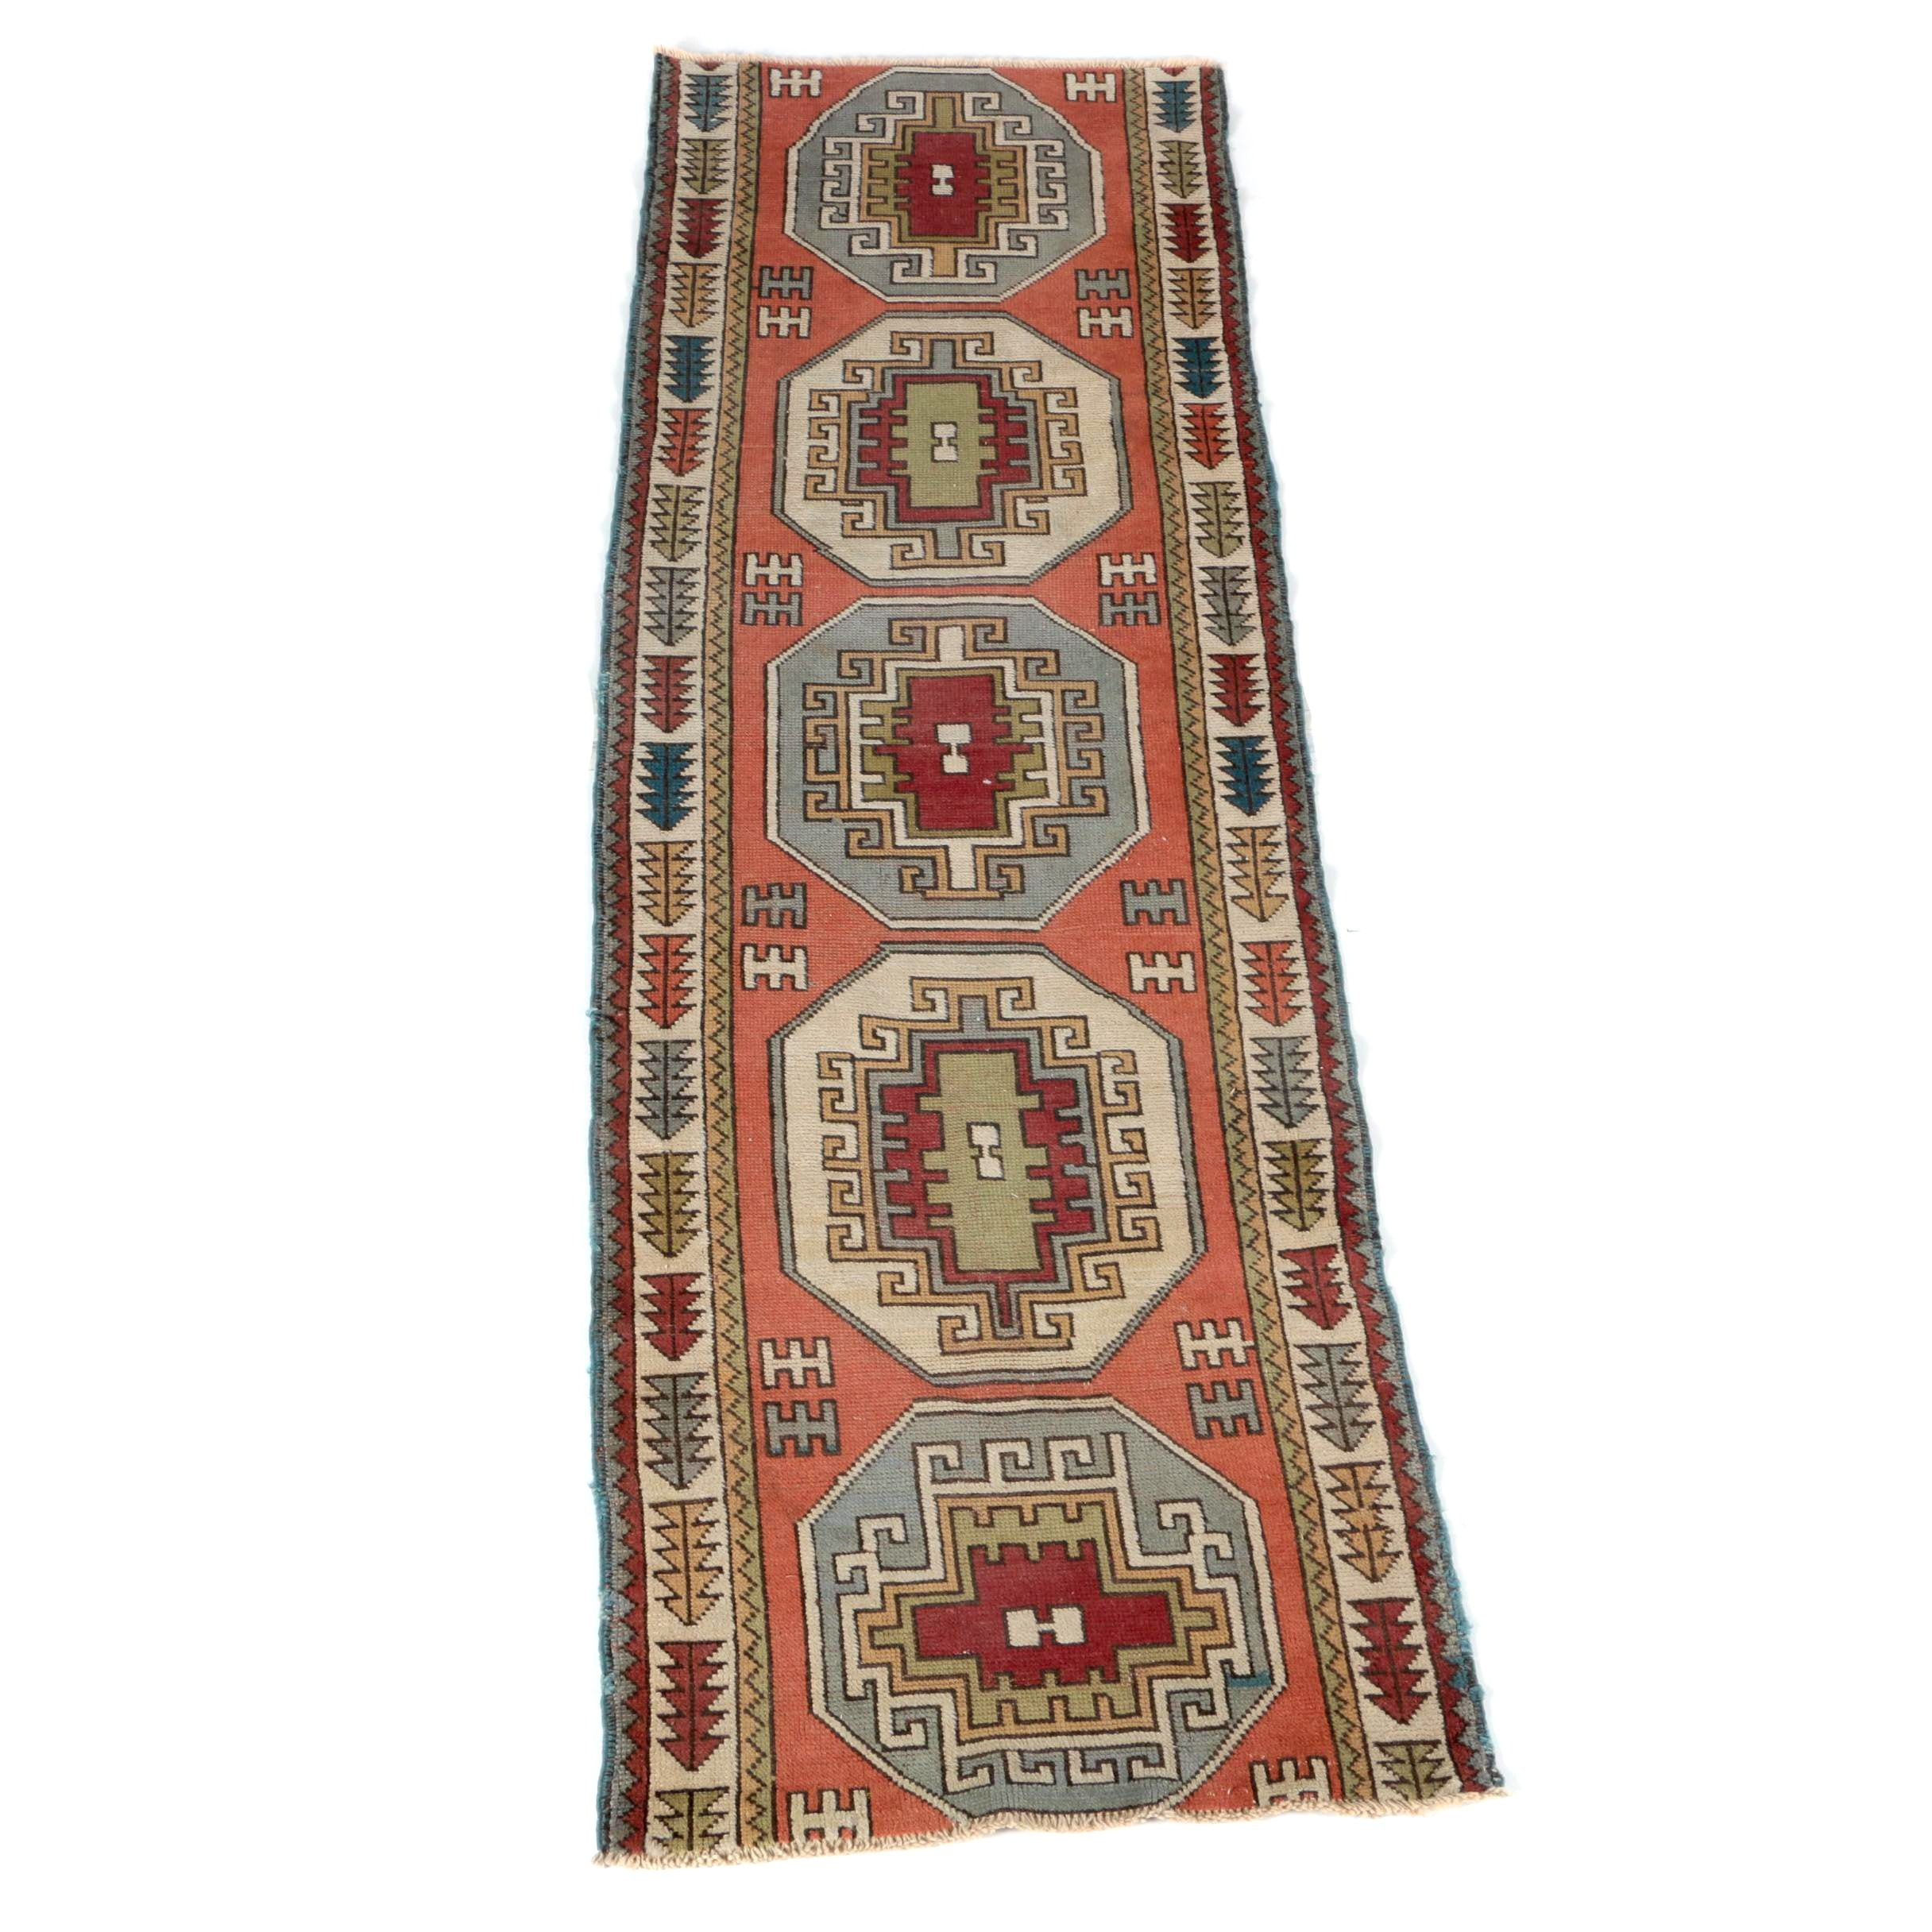 Handwoven Kazak Wool Carpet Runner